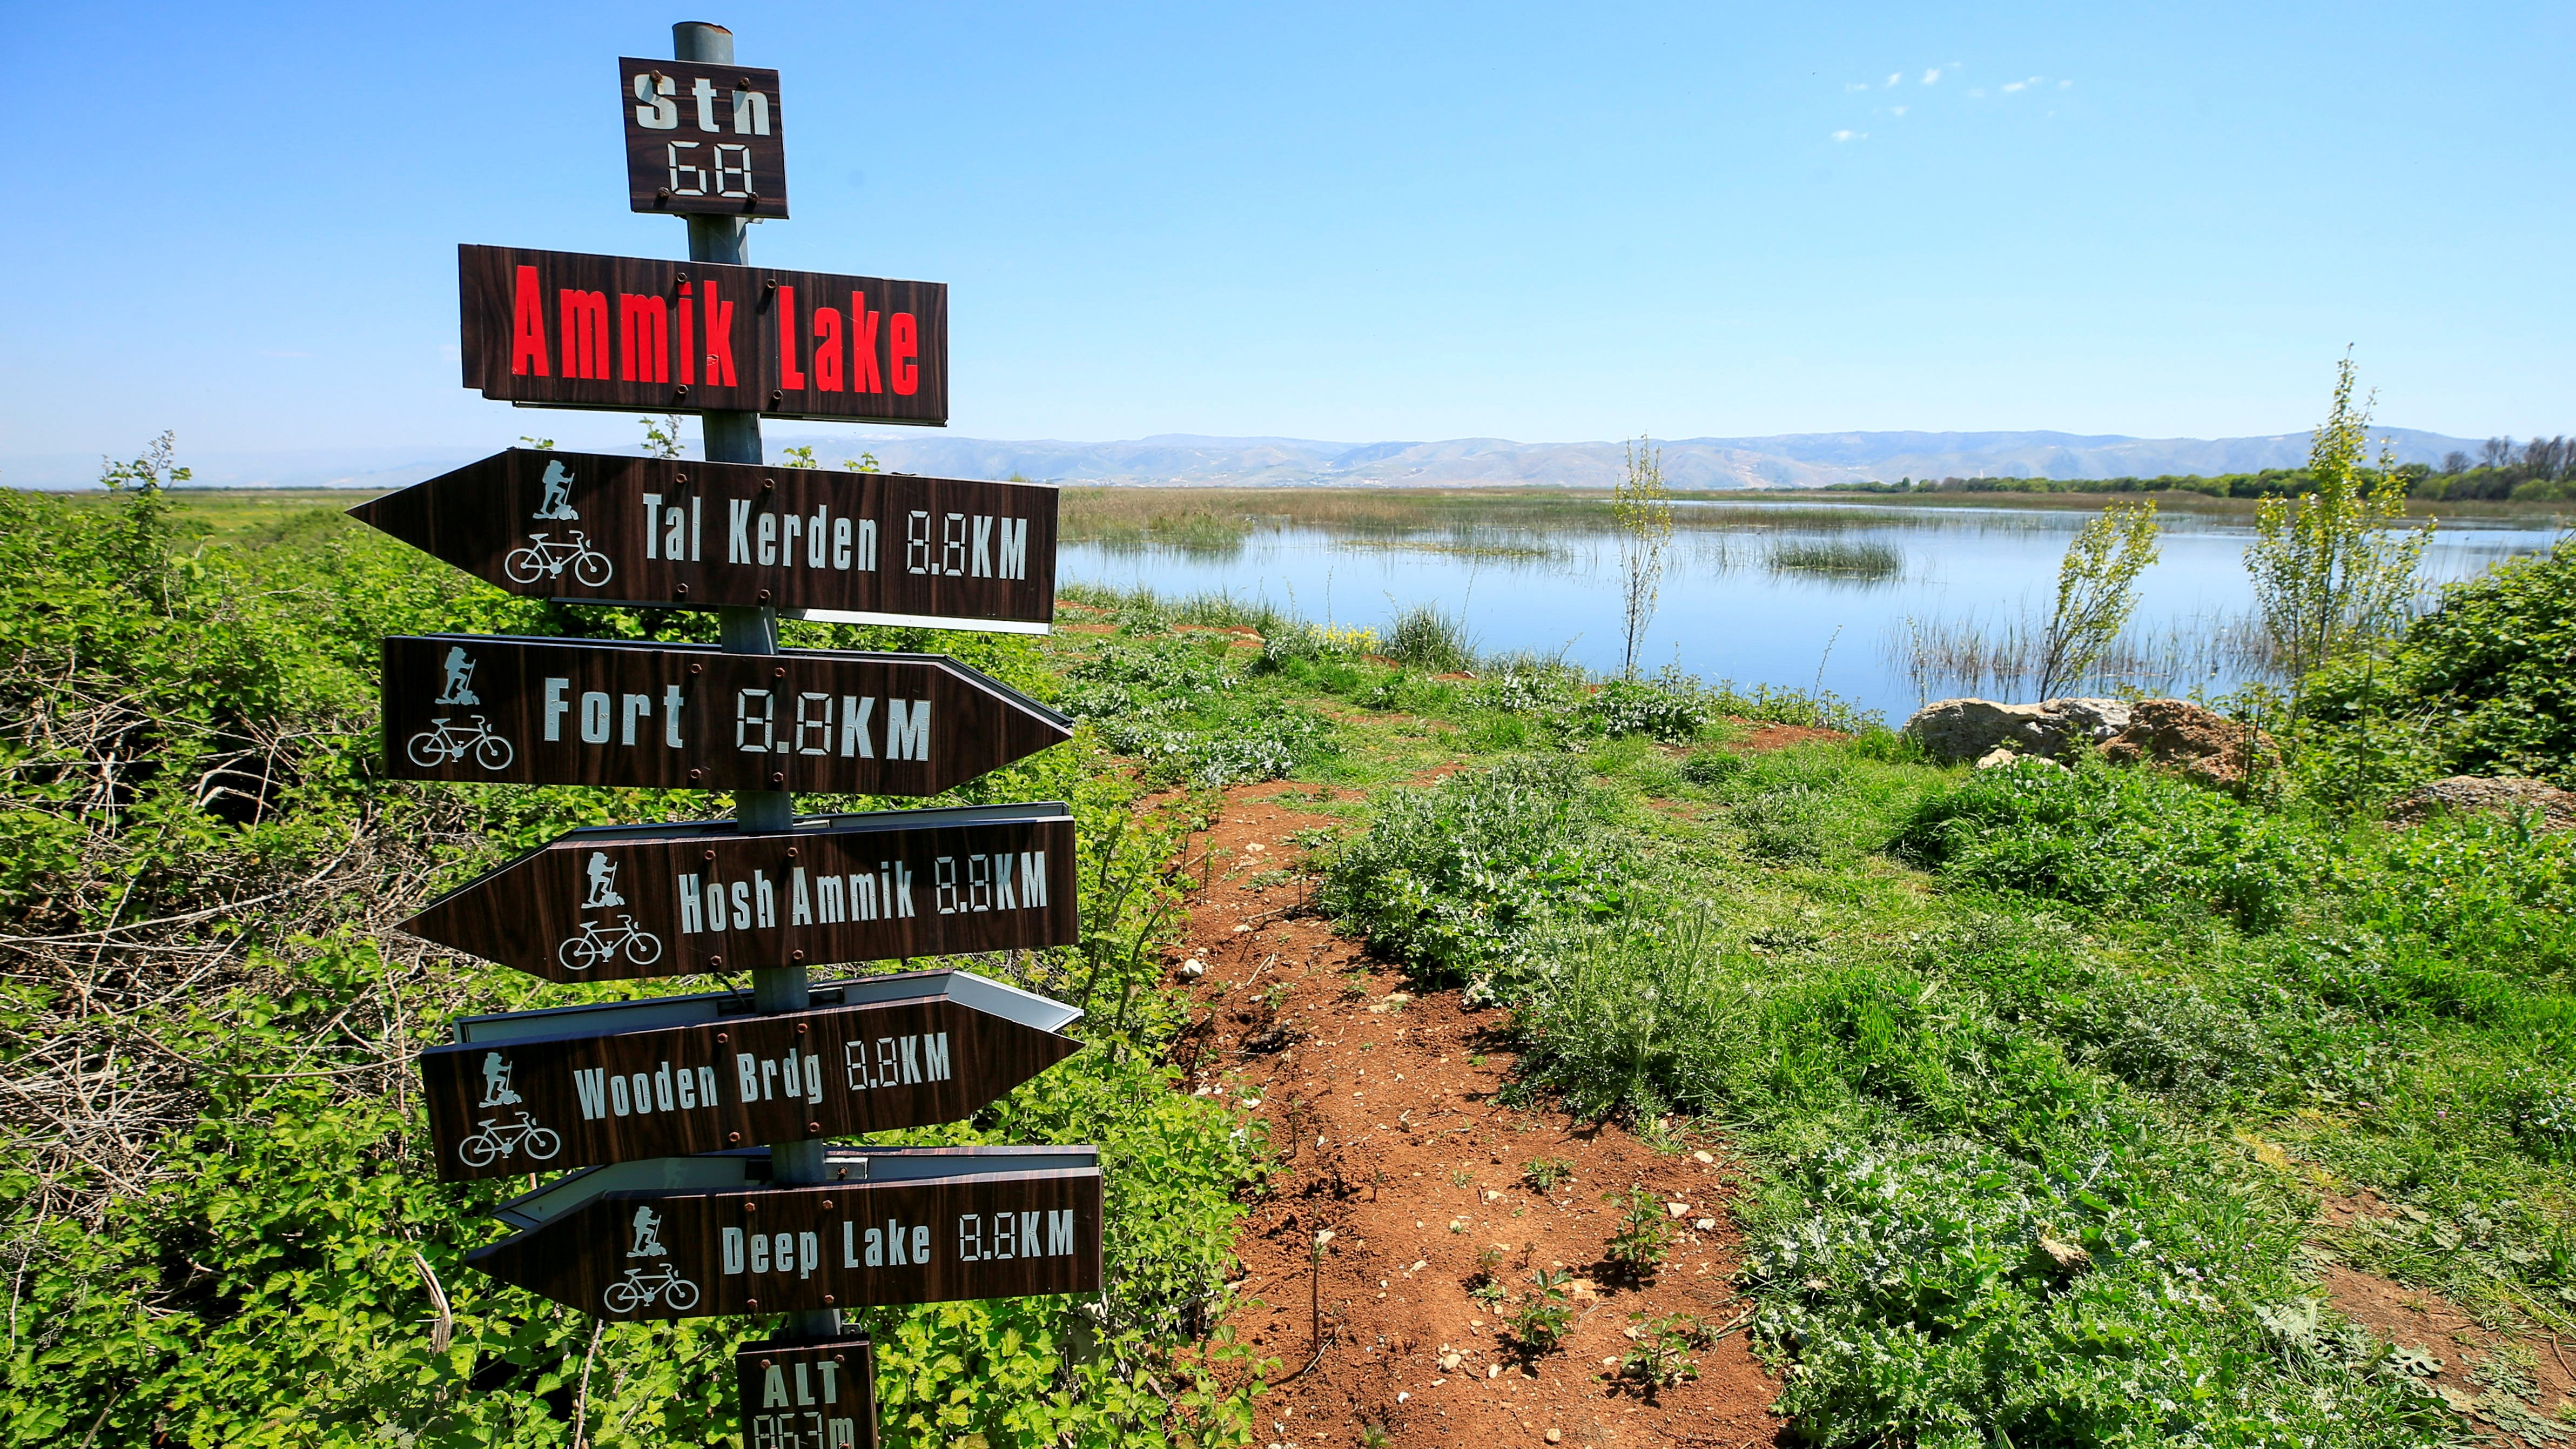 Directional signs are seen in Ammiq Wetland